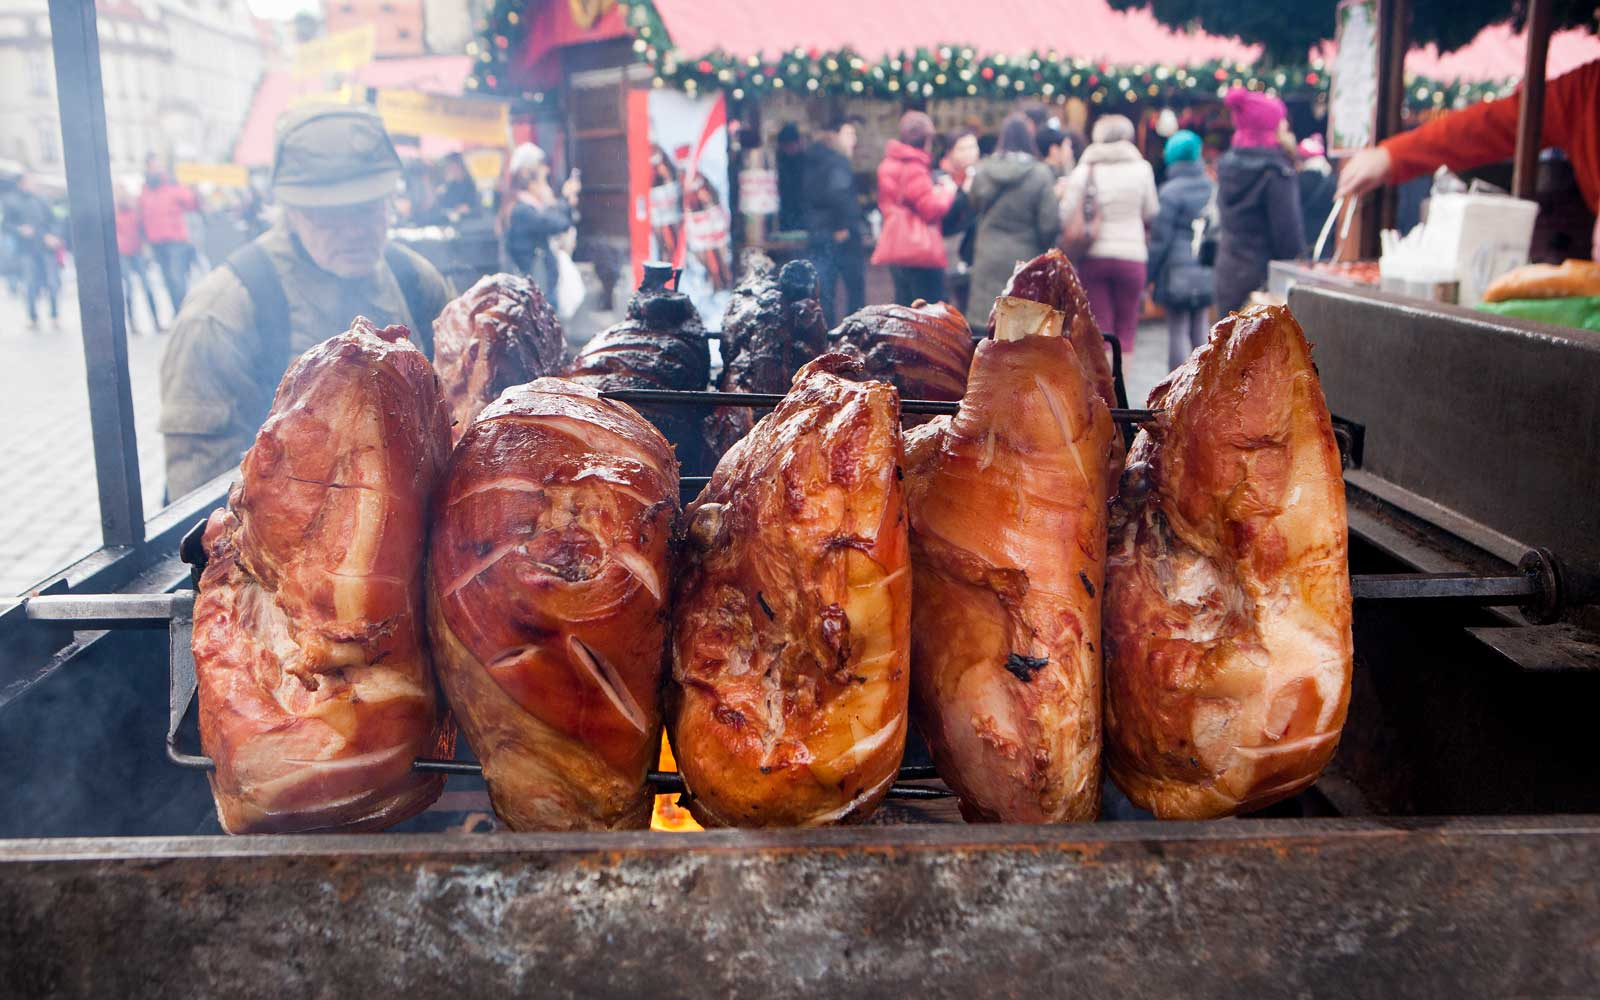 You'll find delectable ham roasting on spits in the markets of the Czech Republic.